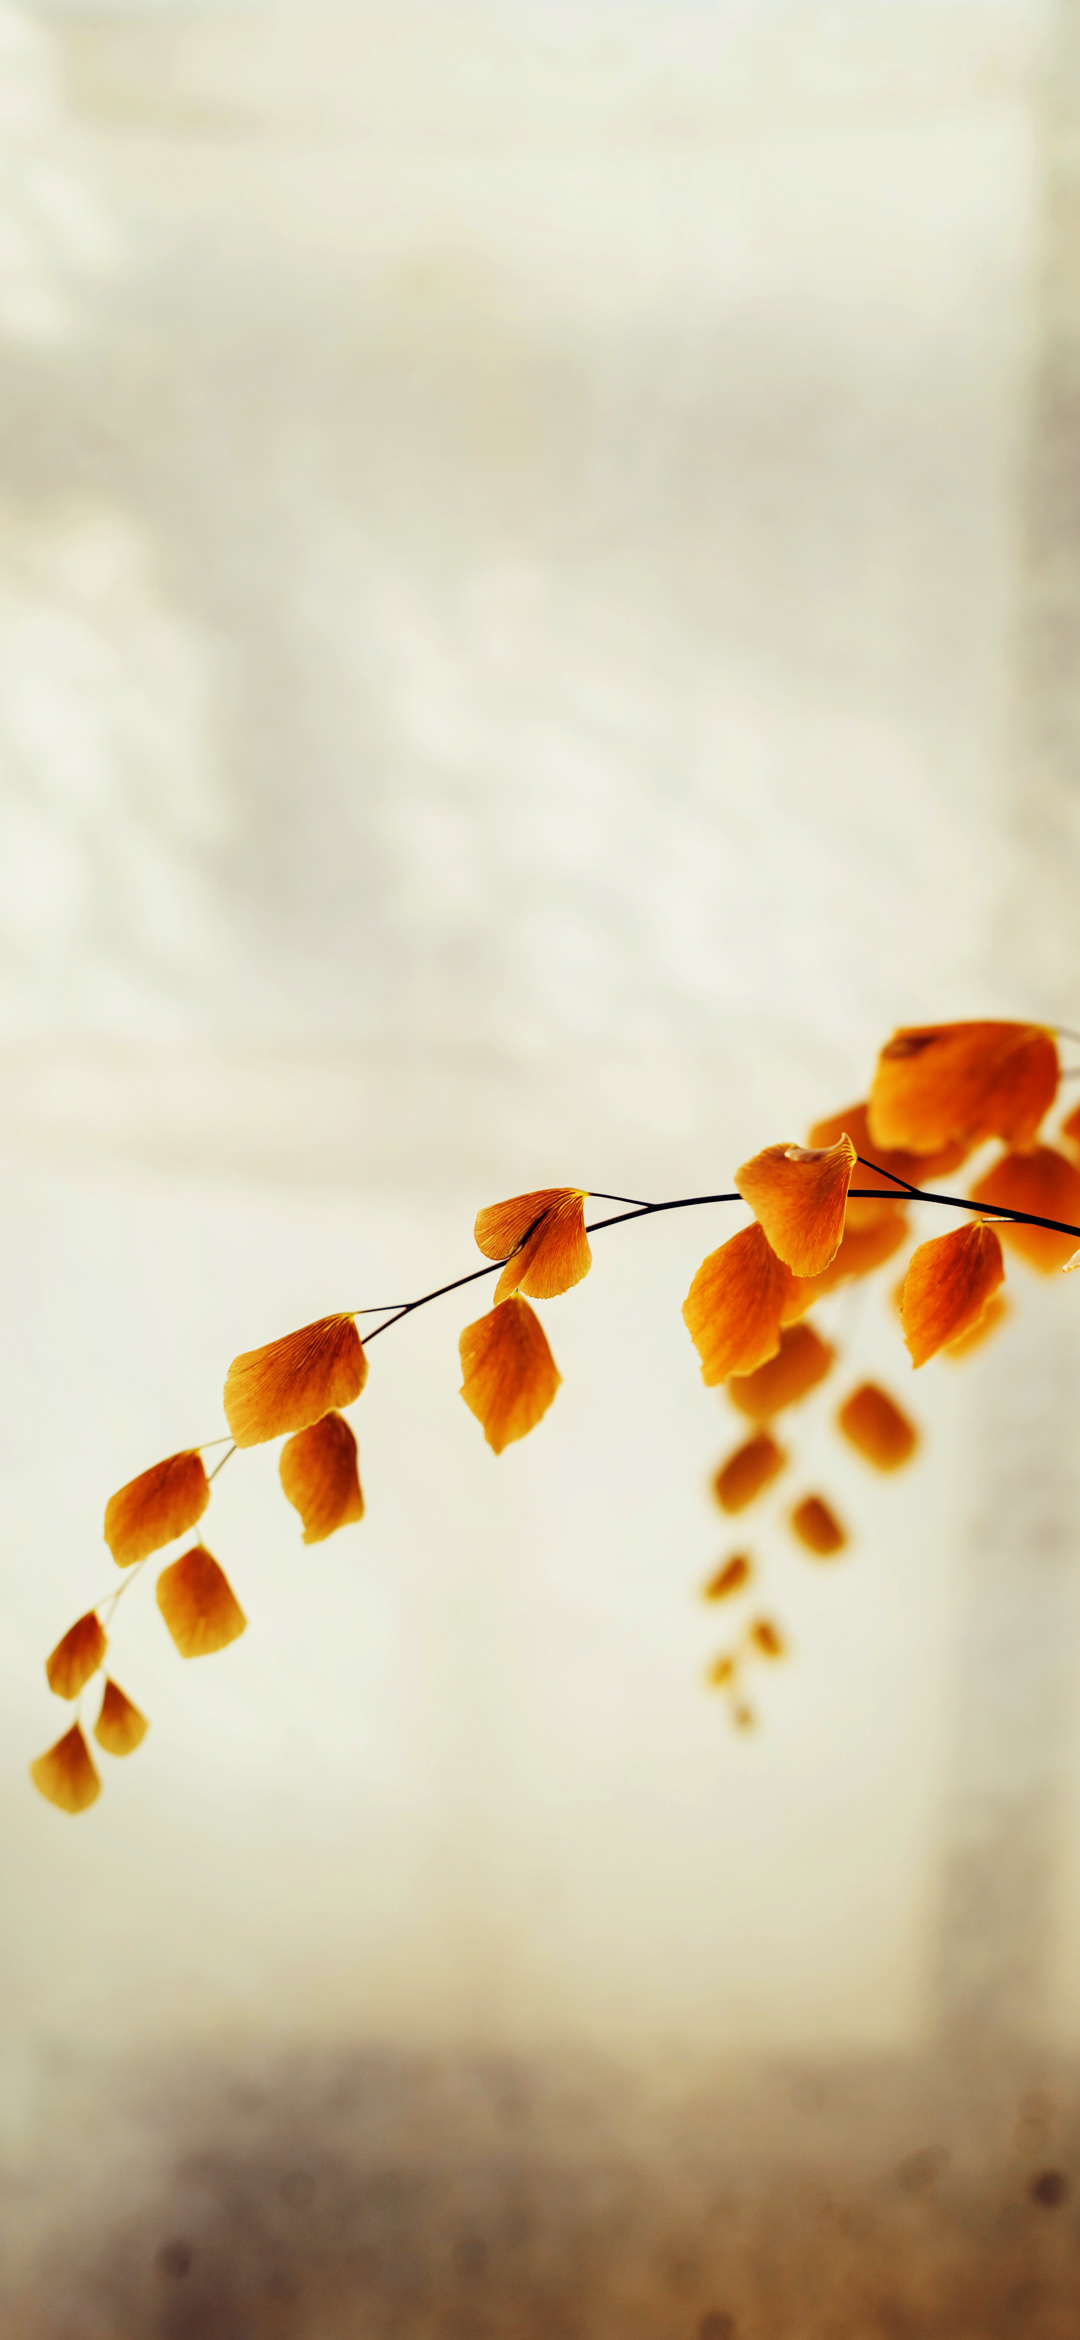 Tree Branch With Golden Leaves wallpaper